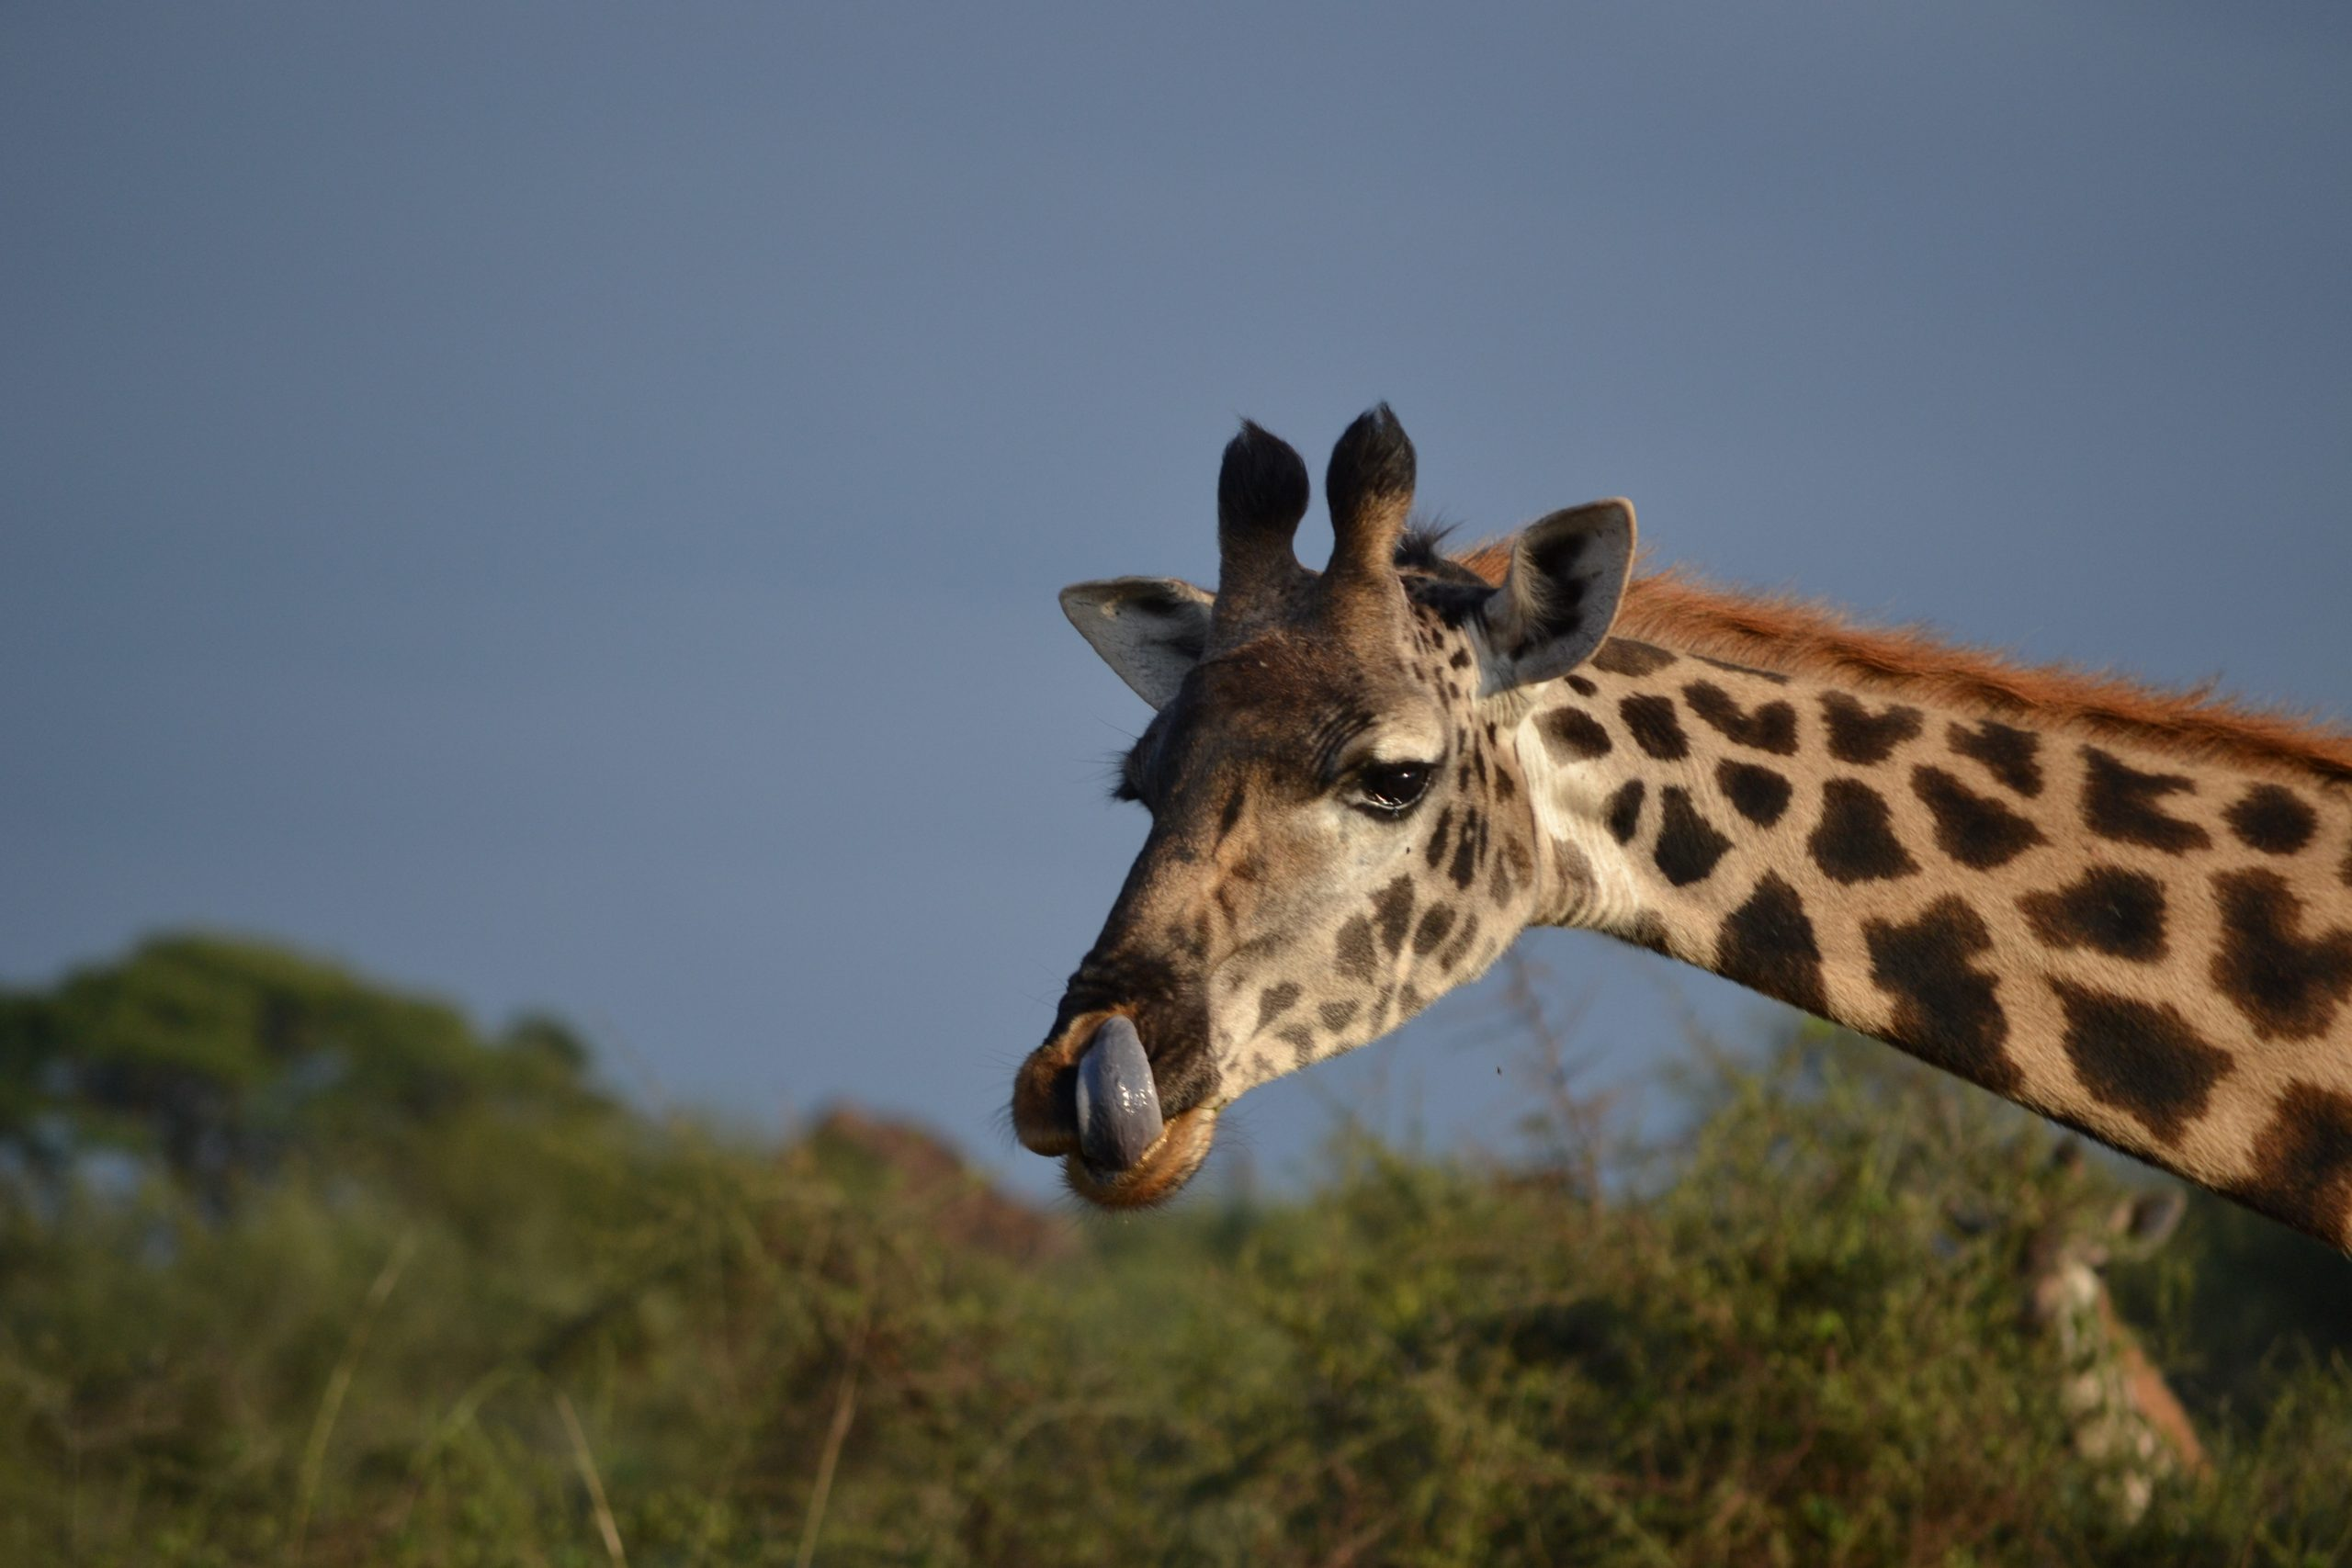 Close up of a giraffe's head and neck taken in Kenya